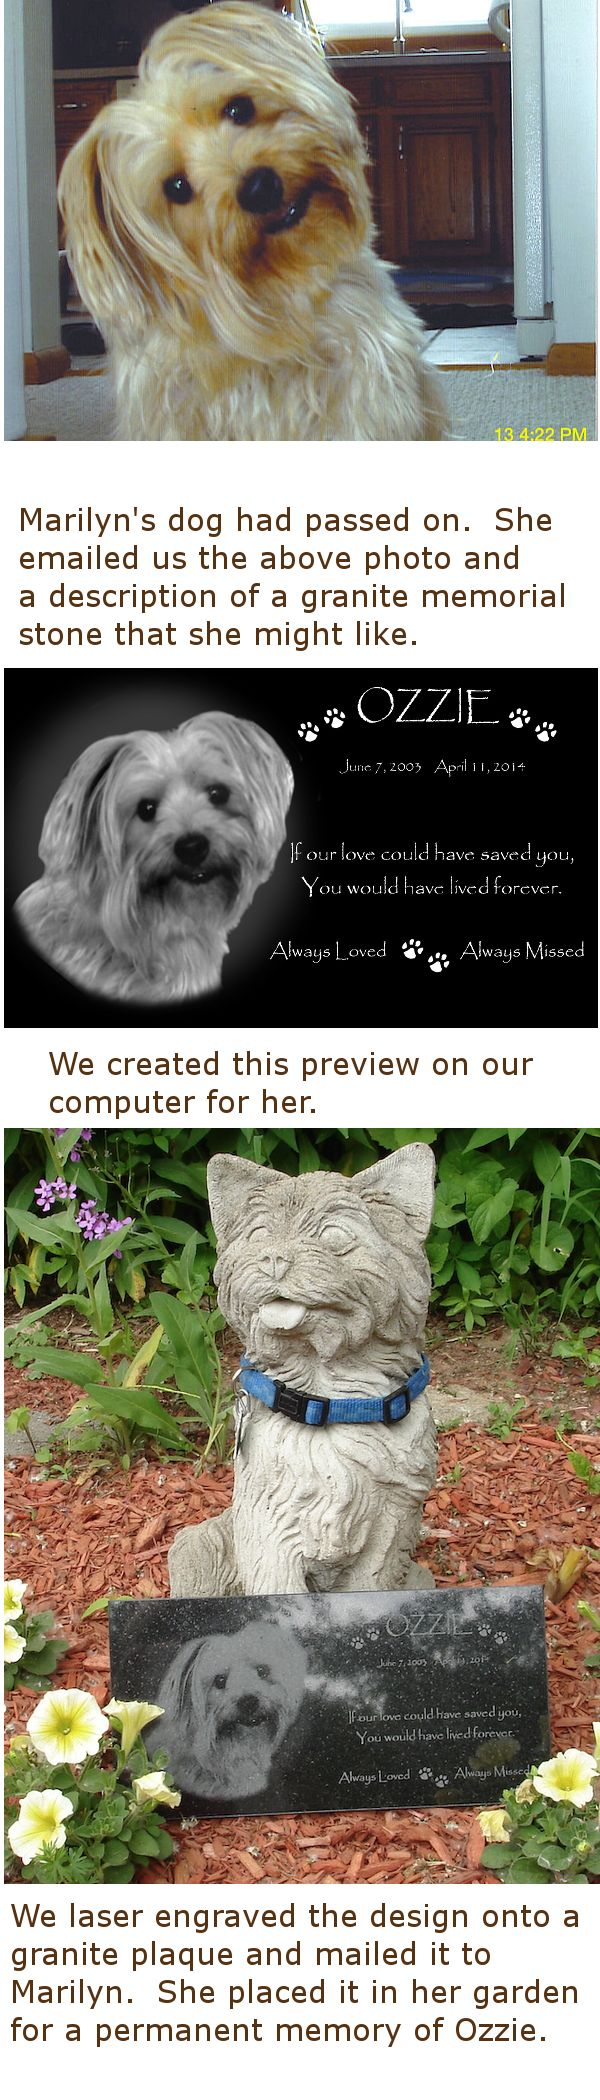 Pet urns memorial ideas pet memorial stones pet memorials pet memorial - Dog Memorial Stone Creation From Photo To Granite Memorial With Photo Laser Etched Into It